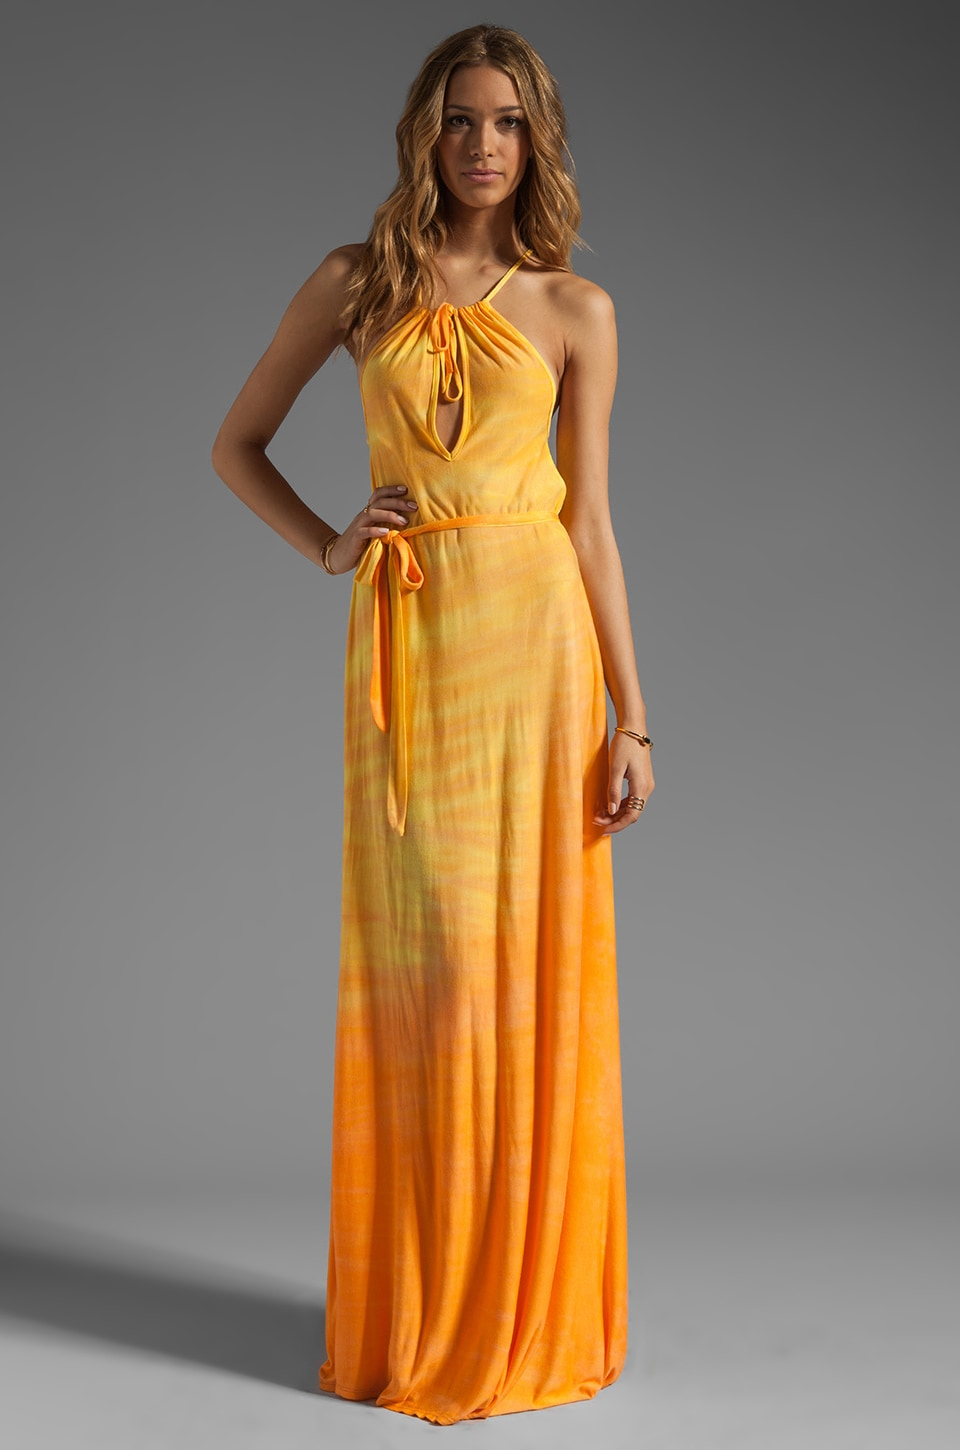 WOODLEIGH Loretta Maxi Dress in Sunset